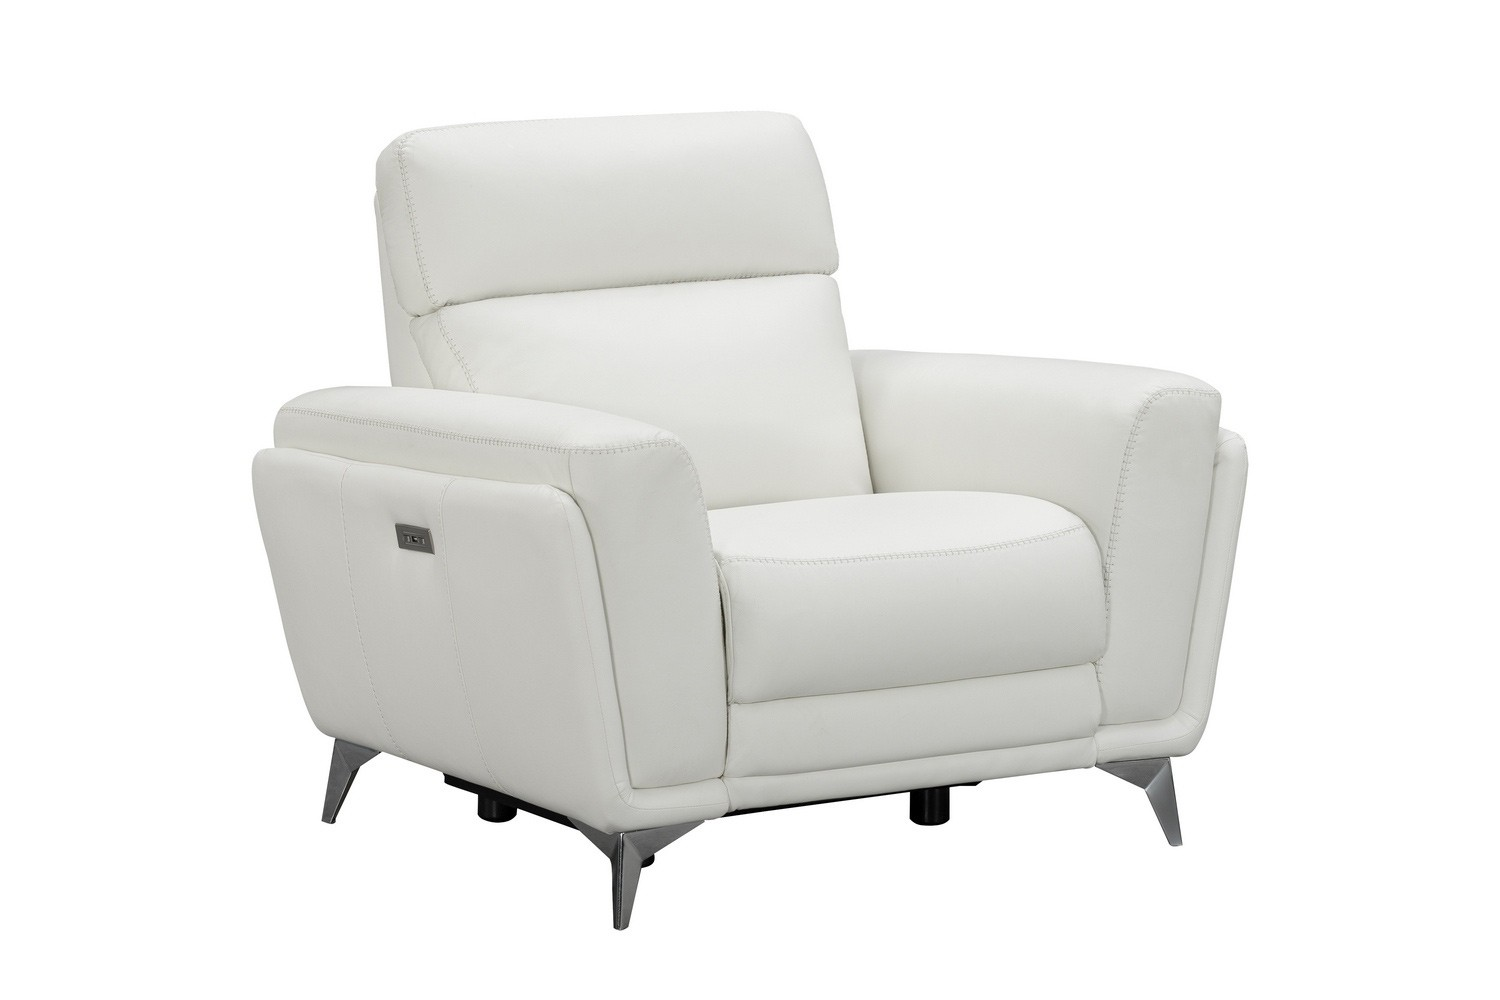 Barcalounger Cameron Power Recliner Chair with Power Head Rest - Enzo Winter White/Leather Match